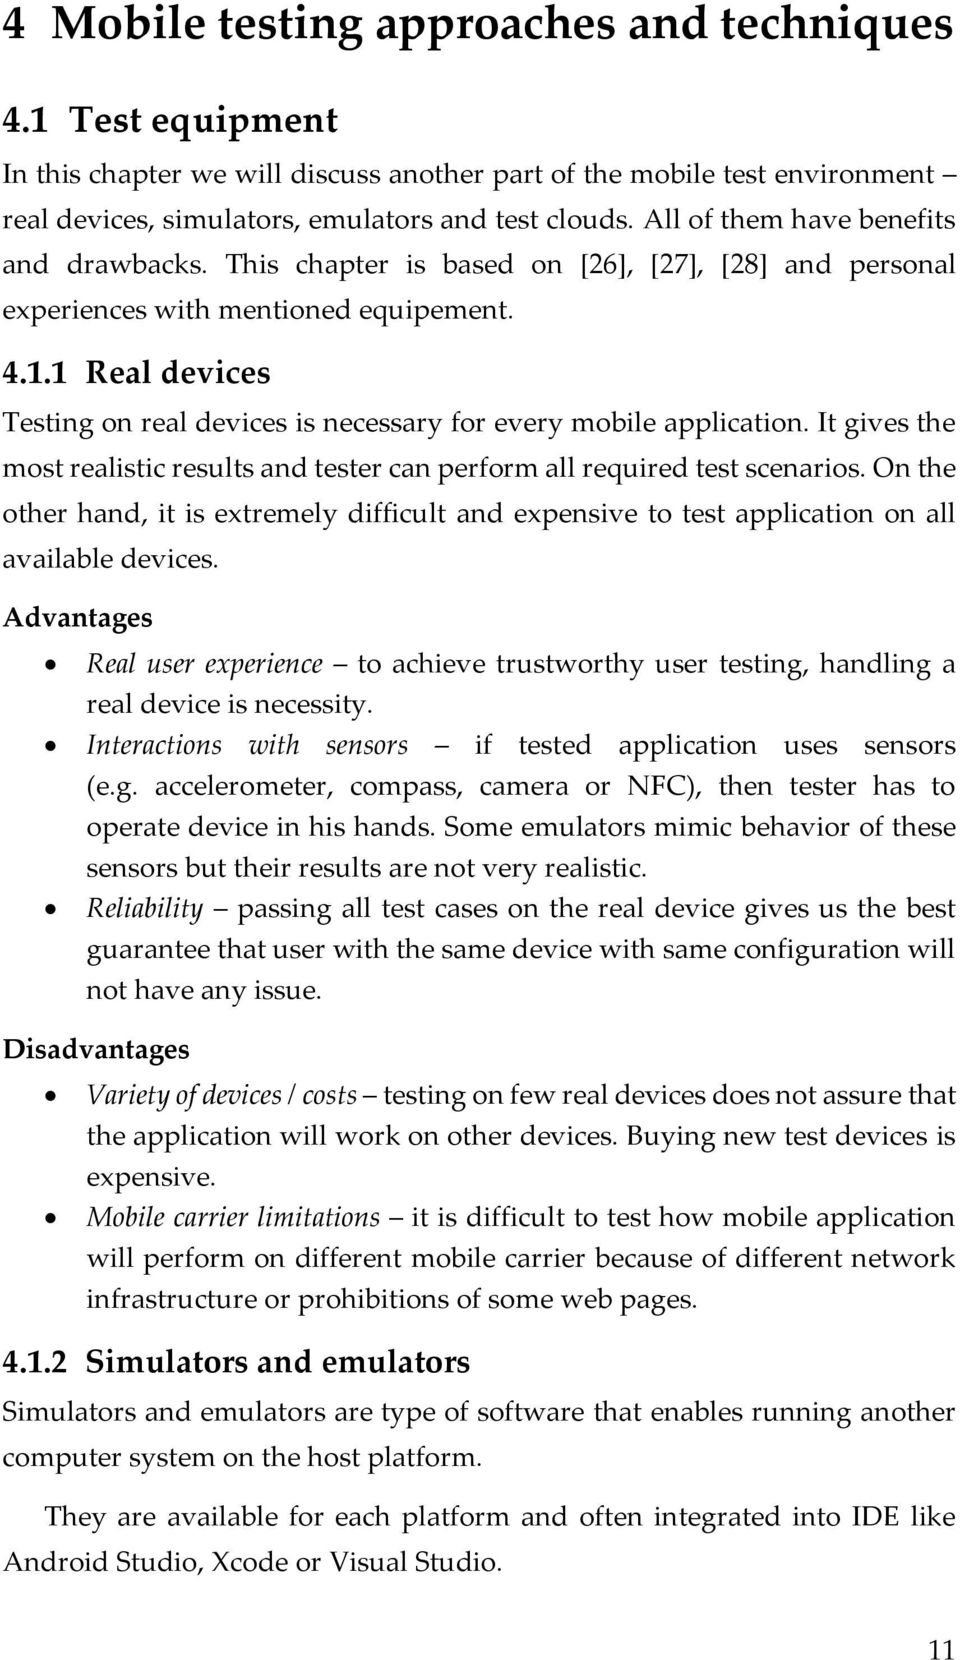 1 Real devices Testing on real devices is necessary for every mobile application. It gives the most realistic results and tester can perform all required test scenarios.